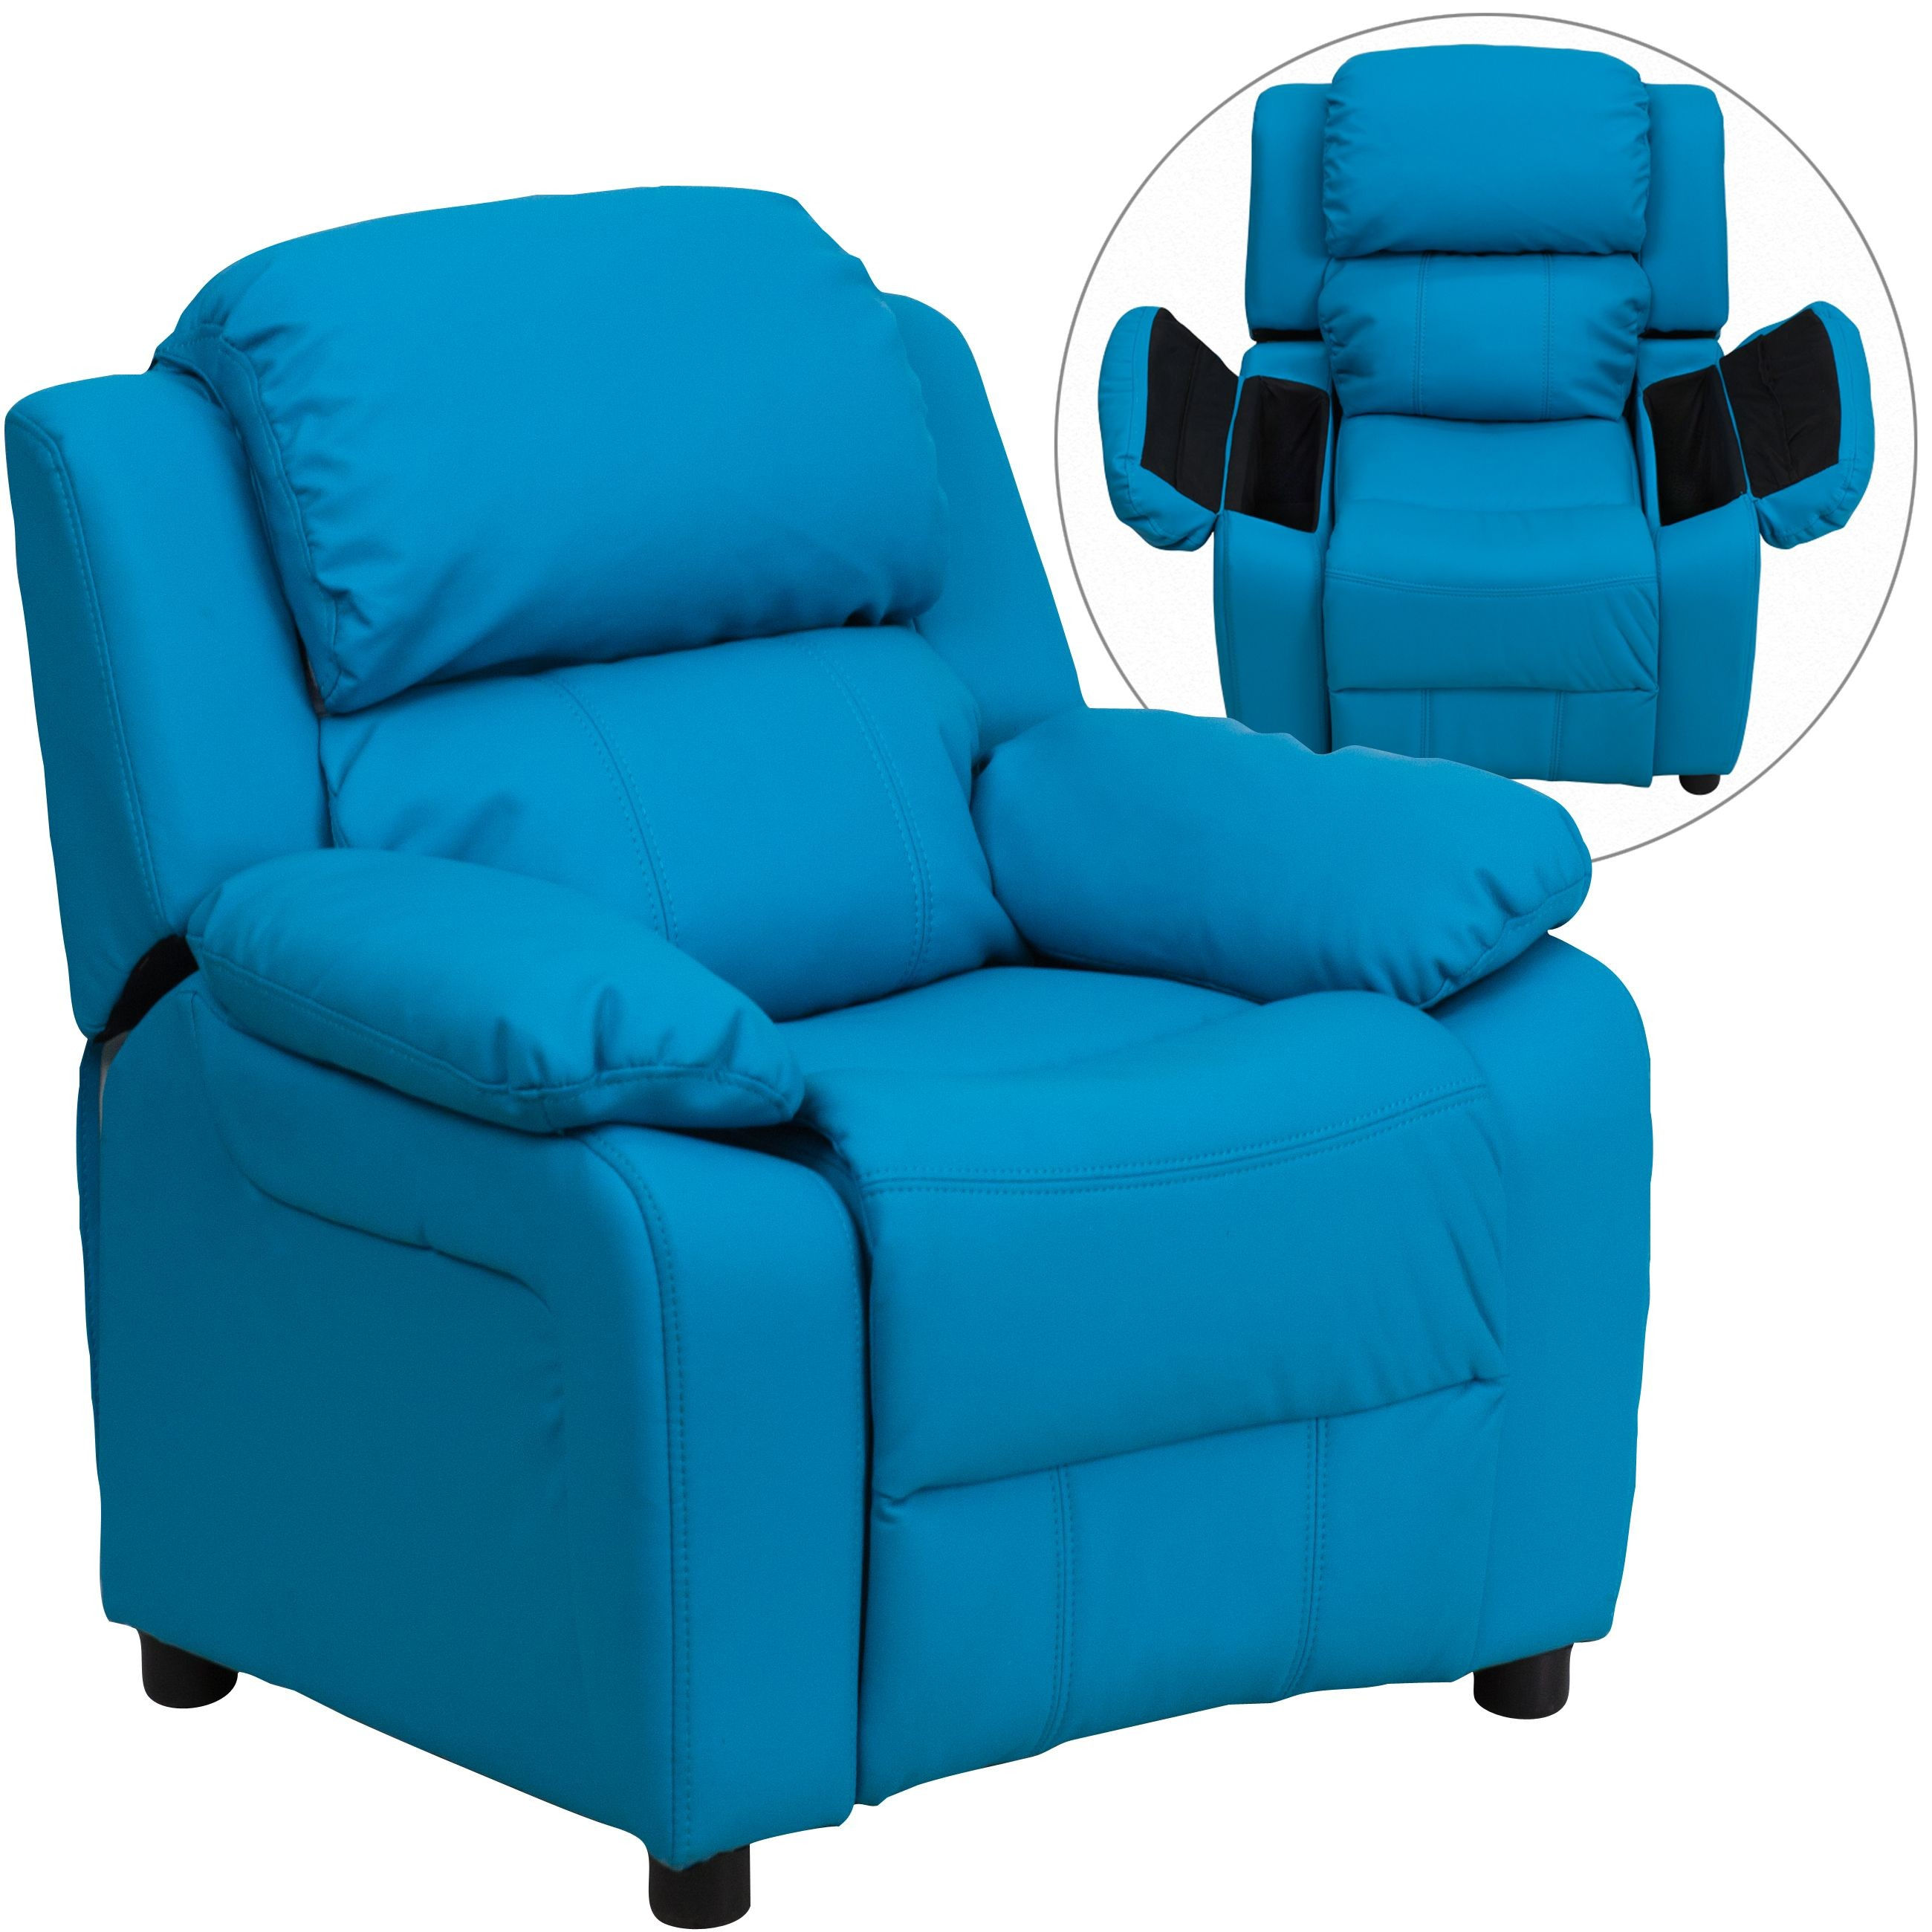 Flash Furniture BT-7985-KID-TURQ-GG Deluxe Heavily Padded Contemporary Turquoise Vinyl Kids Recliner with Storage Arms